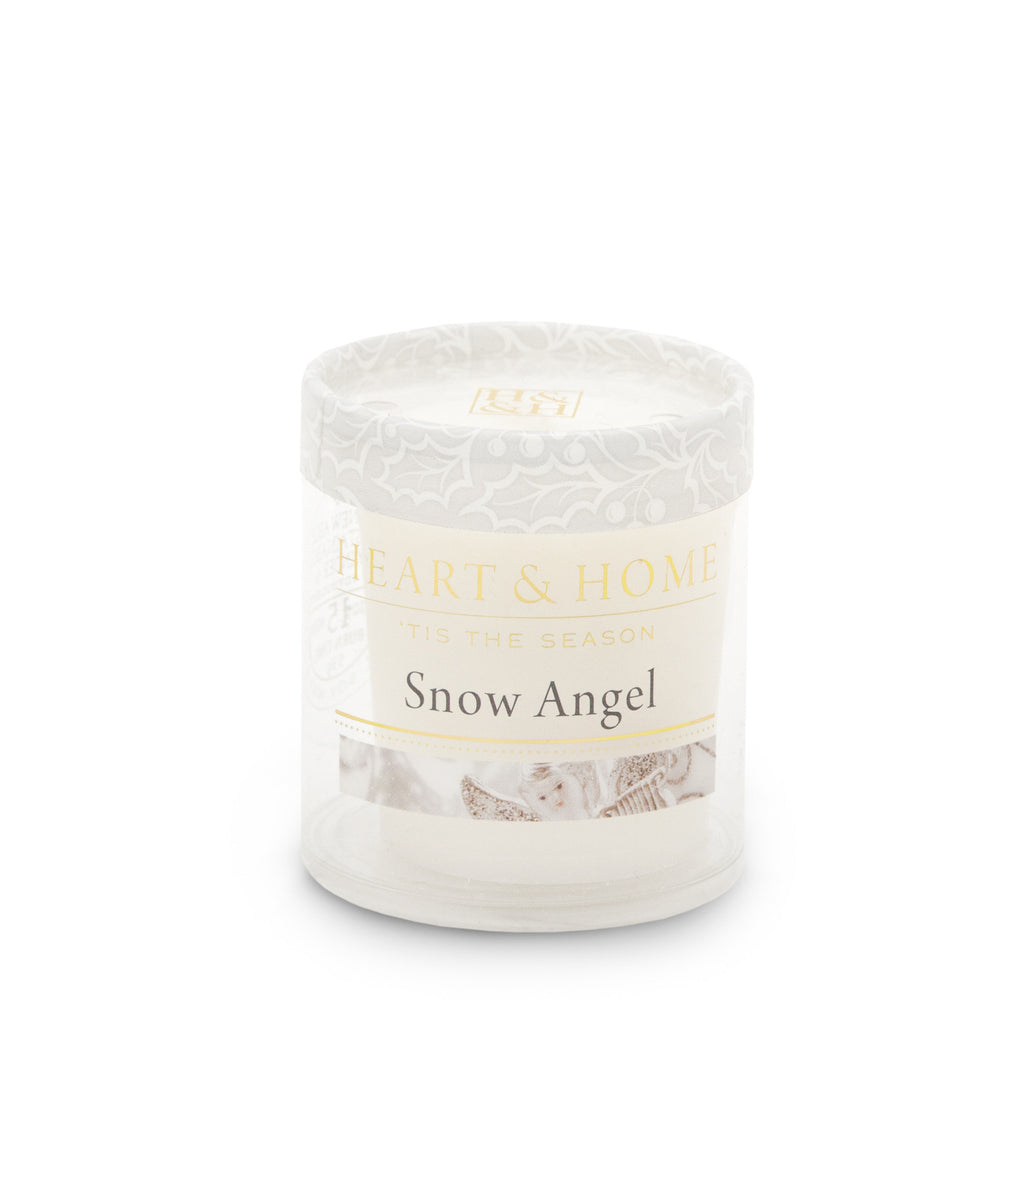 Snow Angel - Votive - From Heart and Home